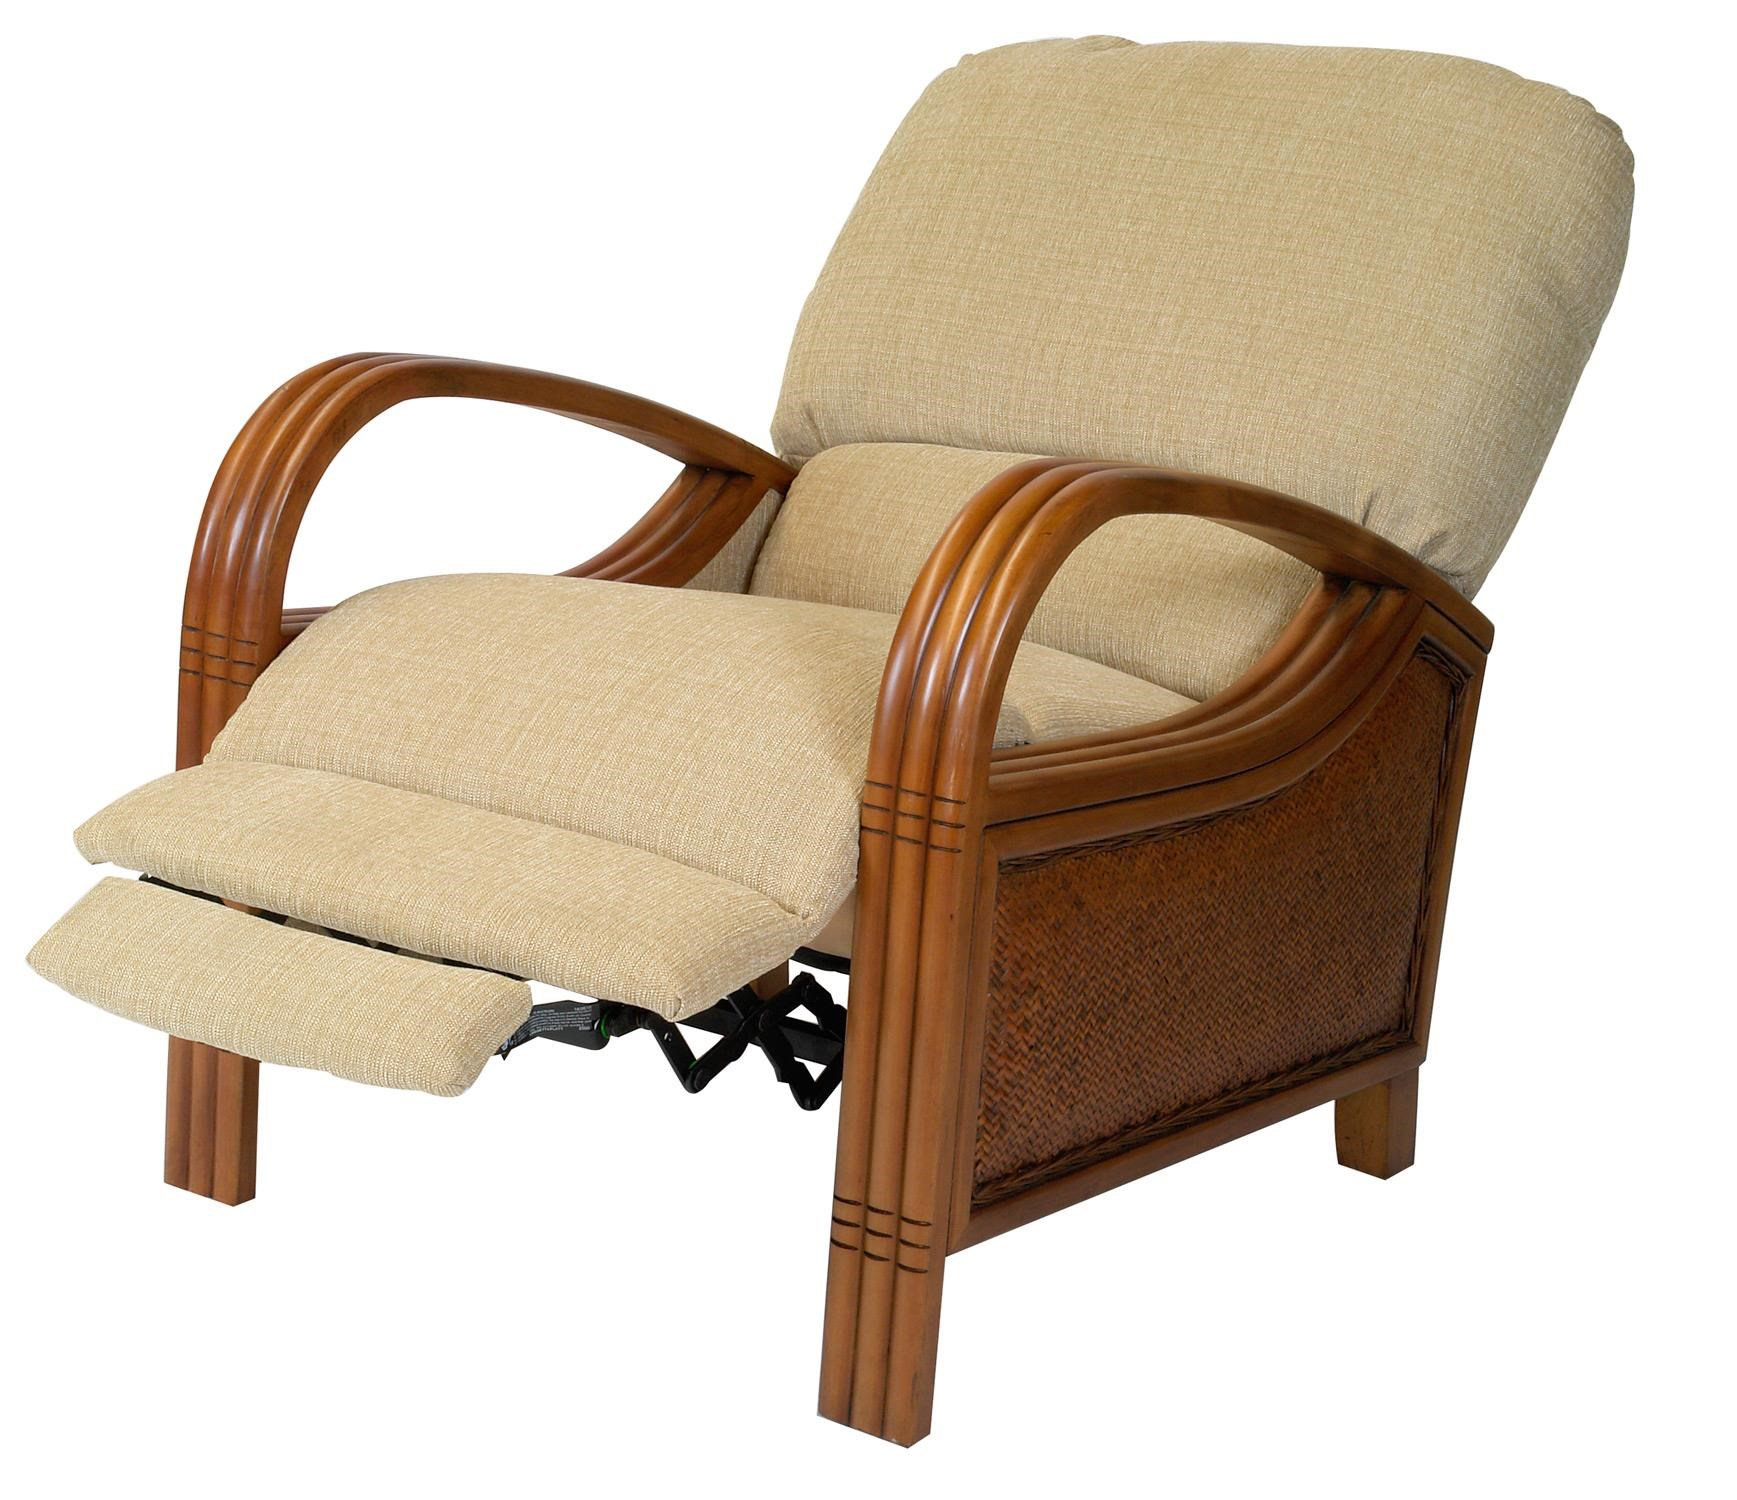 Bailey Recliner by Synergy Home Furnishings  sc 1 st  HomeWorld Furniture & Synergy Home Furnishings Bailey Recliner - HomeWorld Furniture ... islam-shia.org